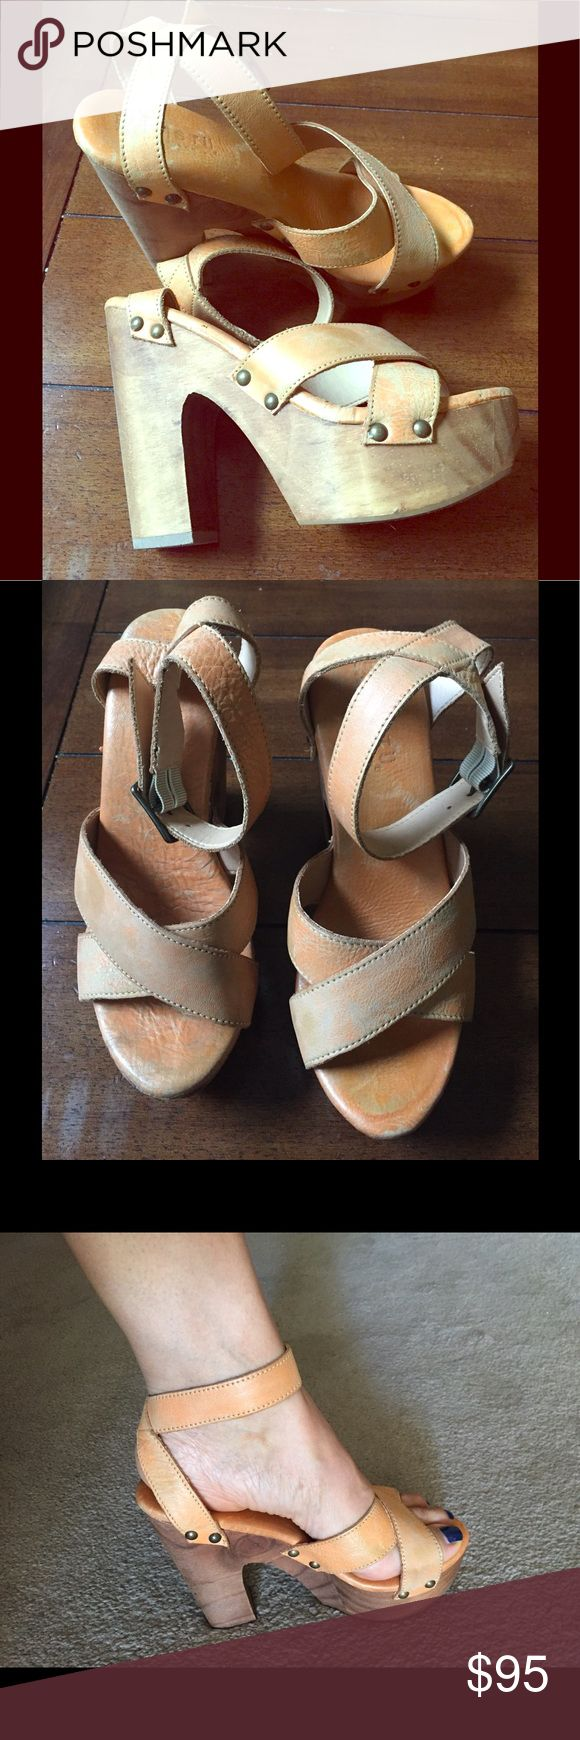 Bed Stu Gorgeous platform heels Bed Stu Gorgeous platform heels. Used very little. In great condition. Very fashionable Bed Stu Shoes Platforms